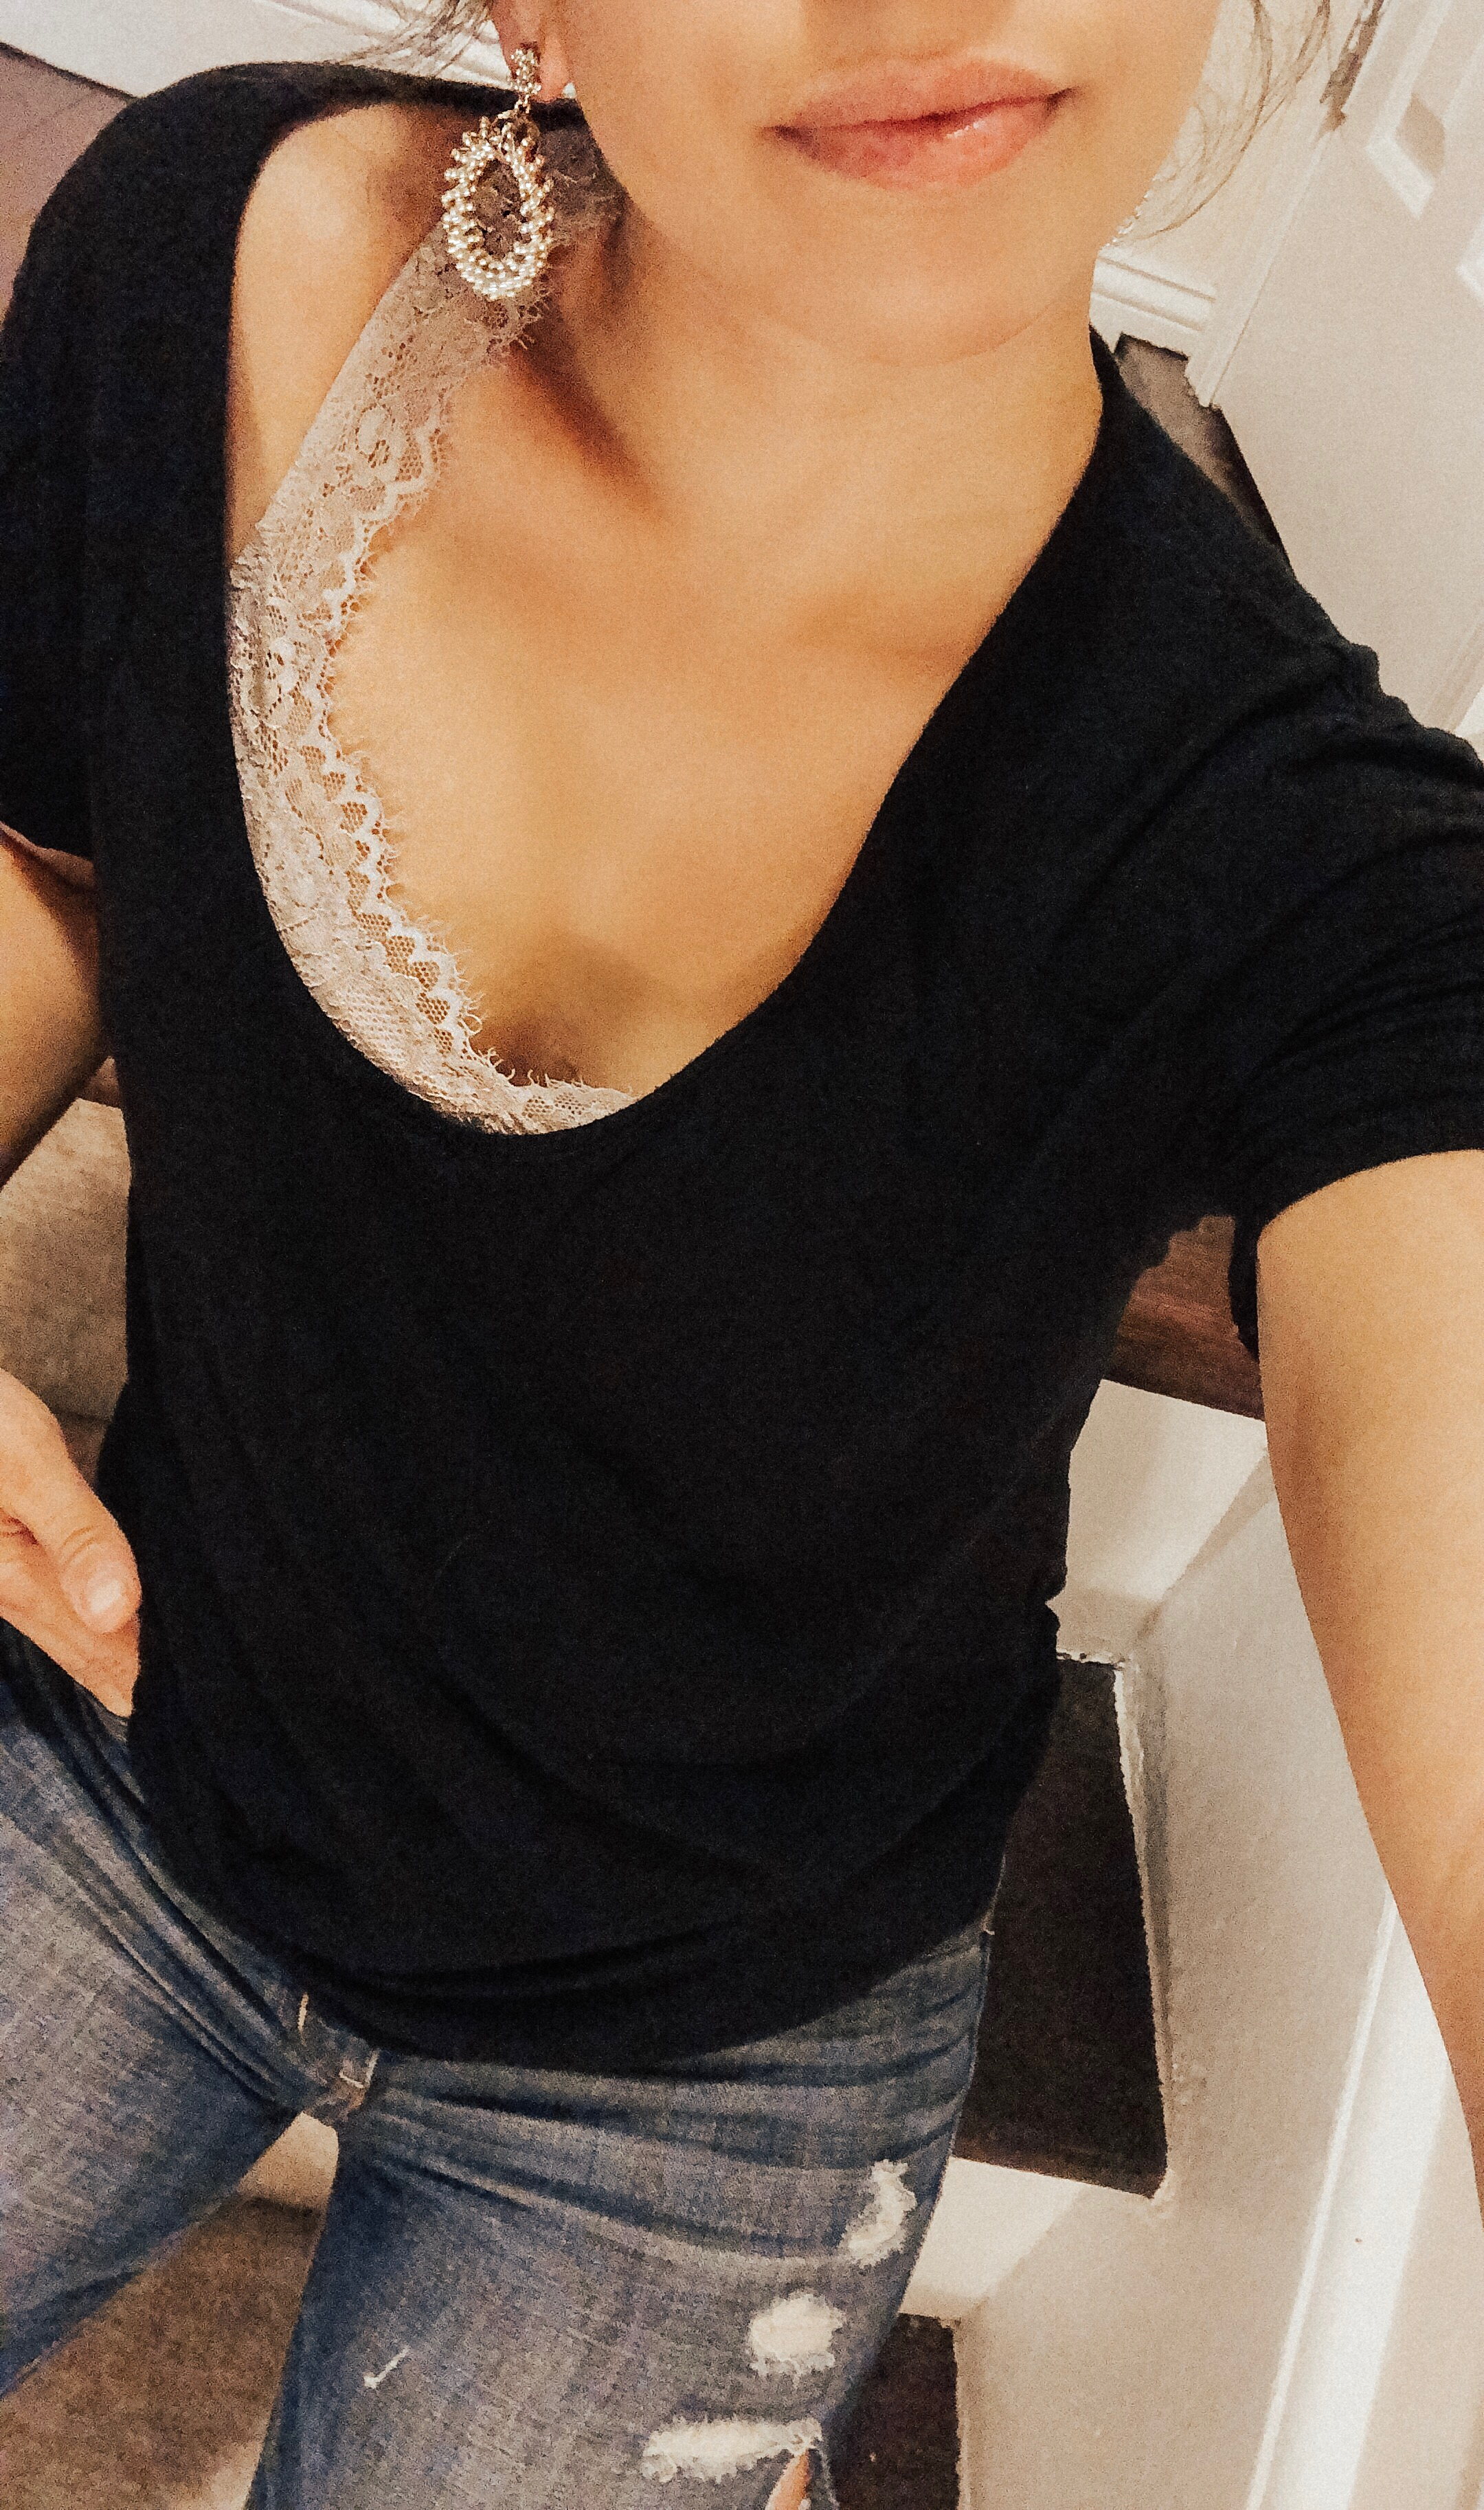 e676ec6274778 The Best Bralettes to Wear Under Anything - Bay s Style Diary